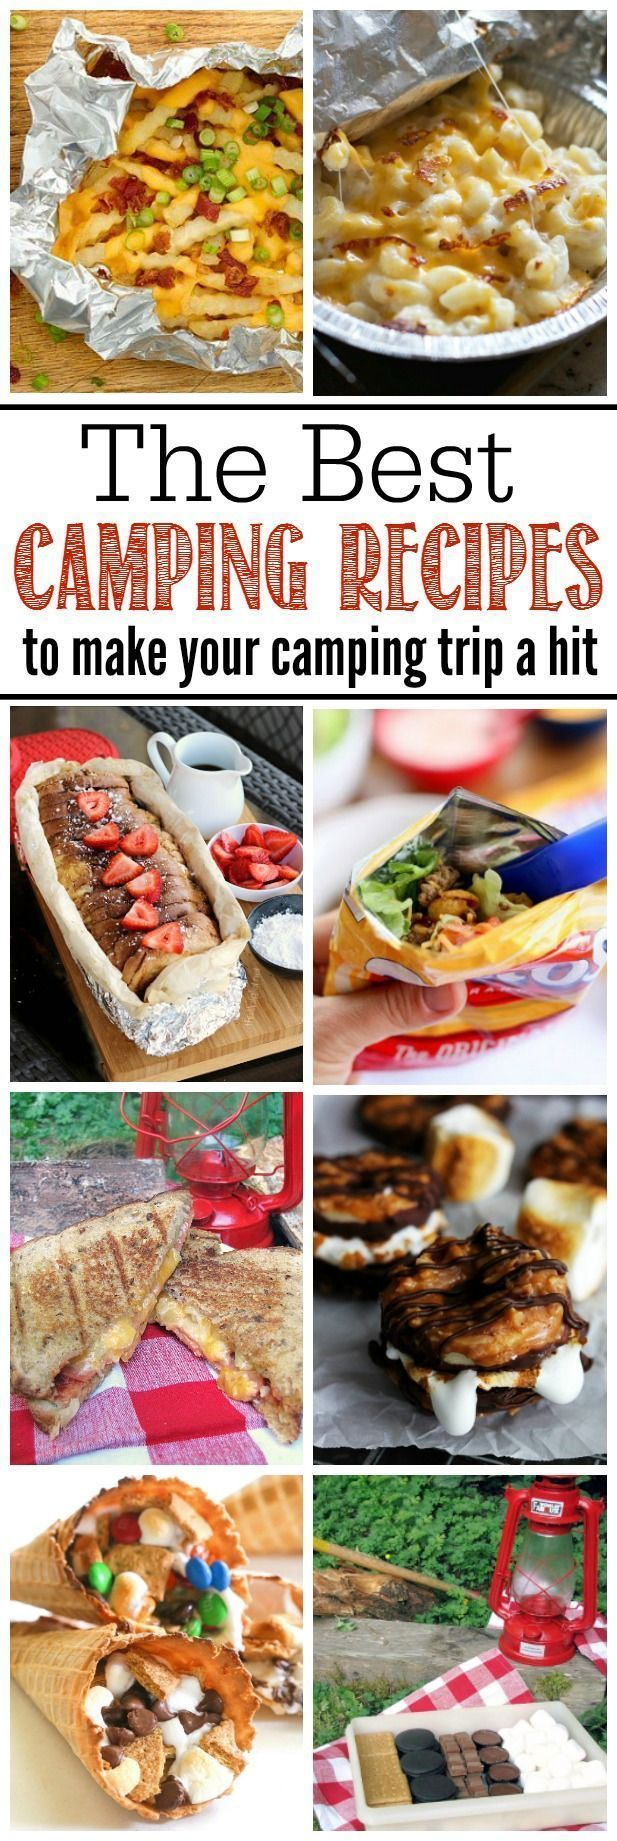 Awesome camping recipes for camping trips or backyard campfires. Must try these for summer!